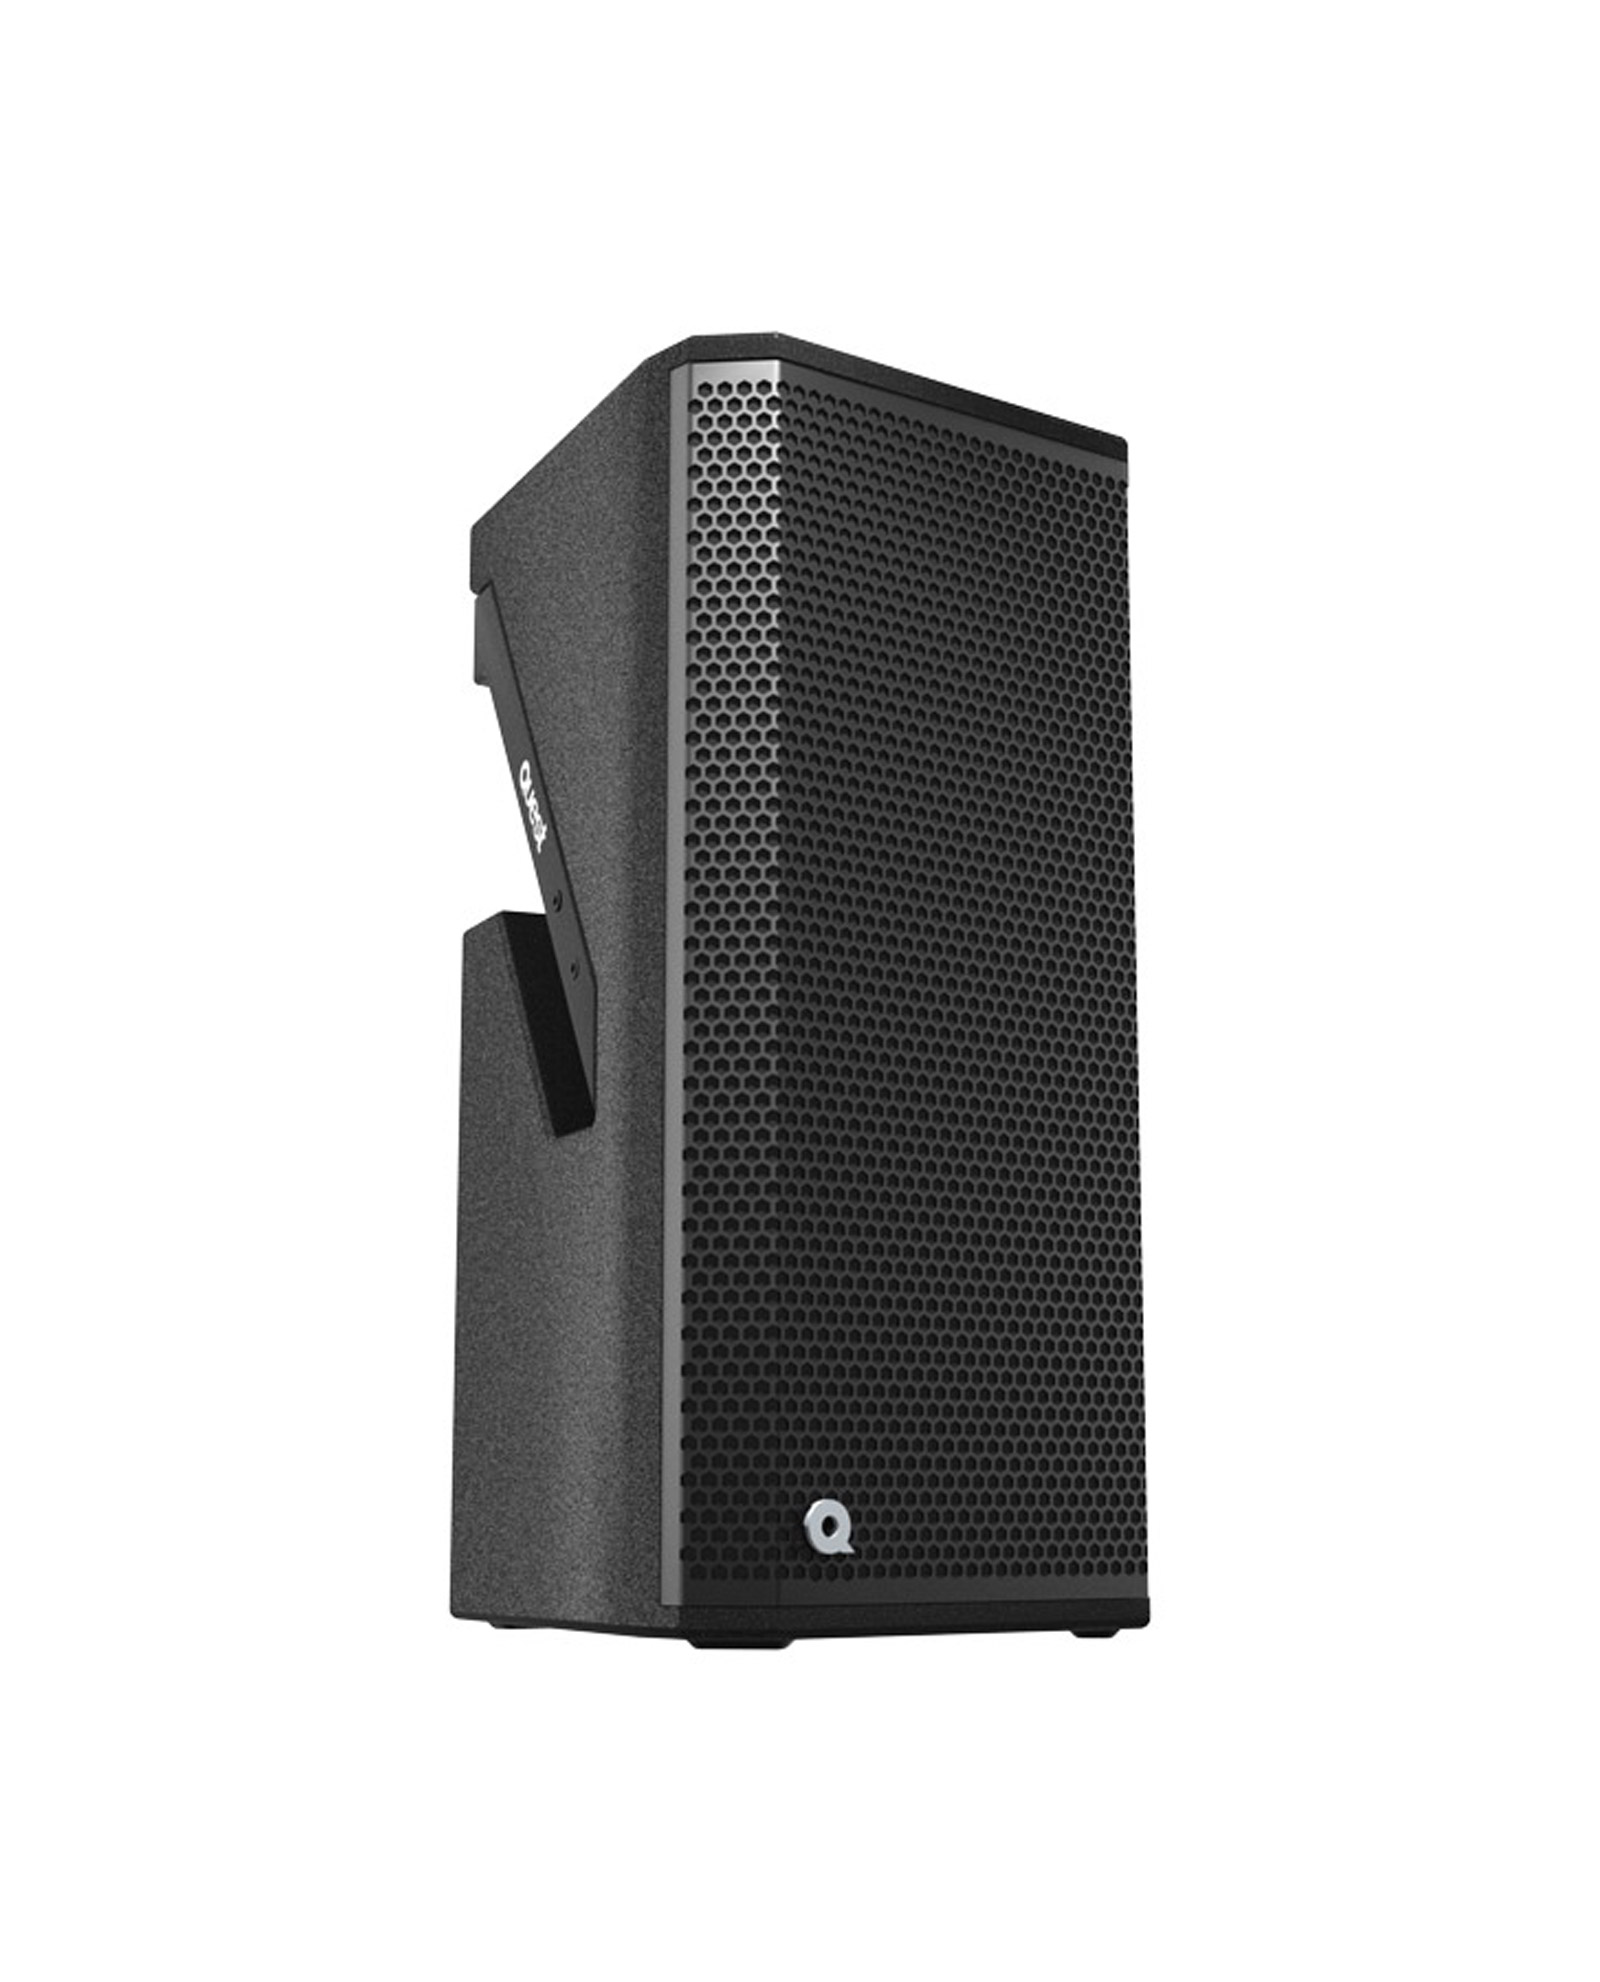 Quest Hpi111 10 All Round Speaker For Vocals And Music 1